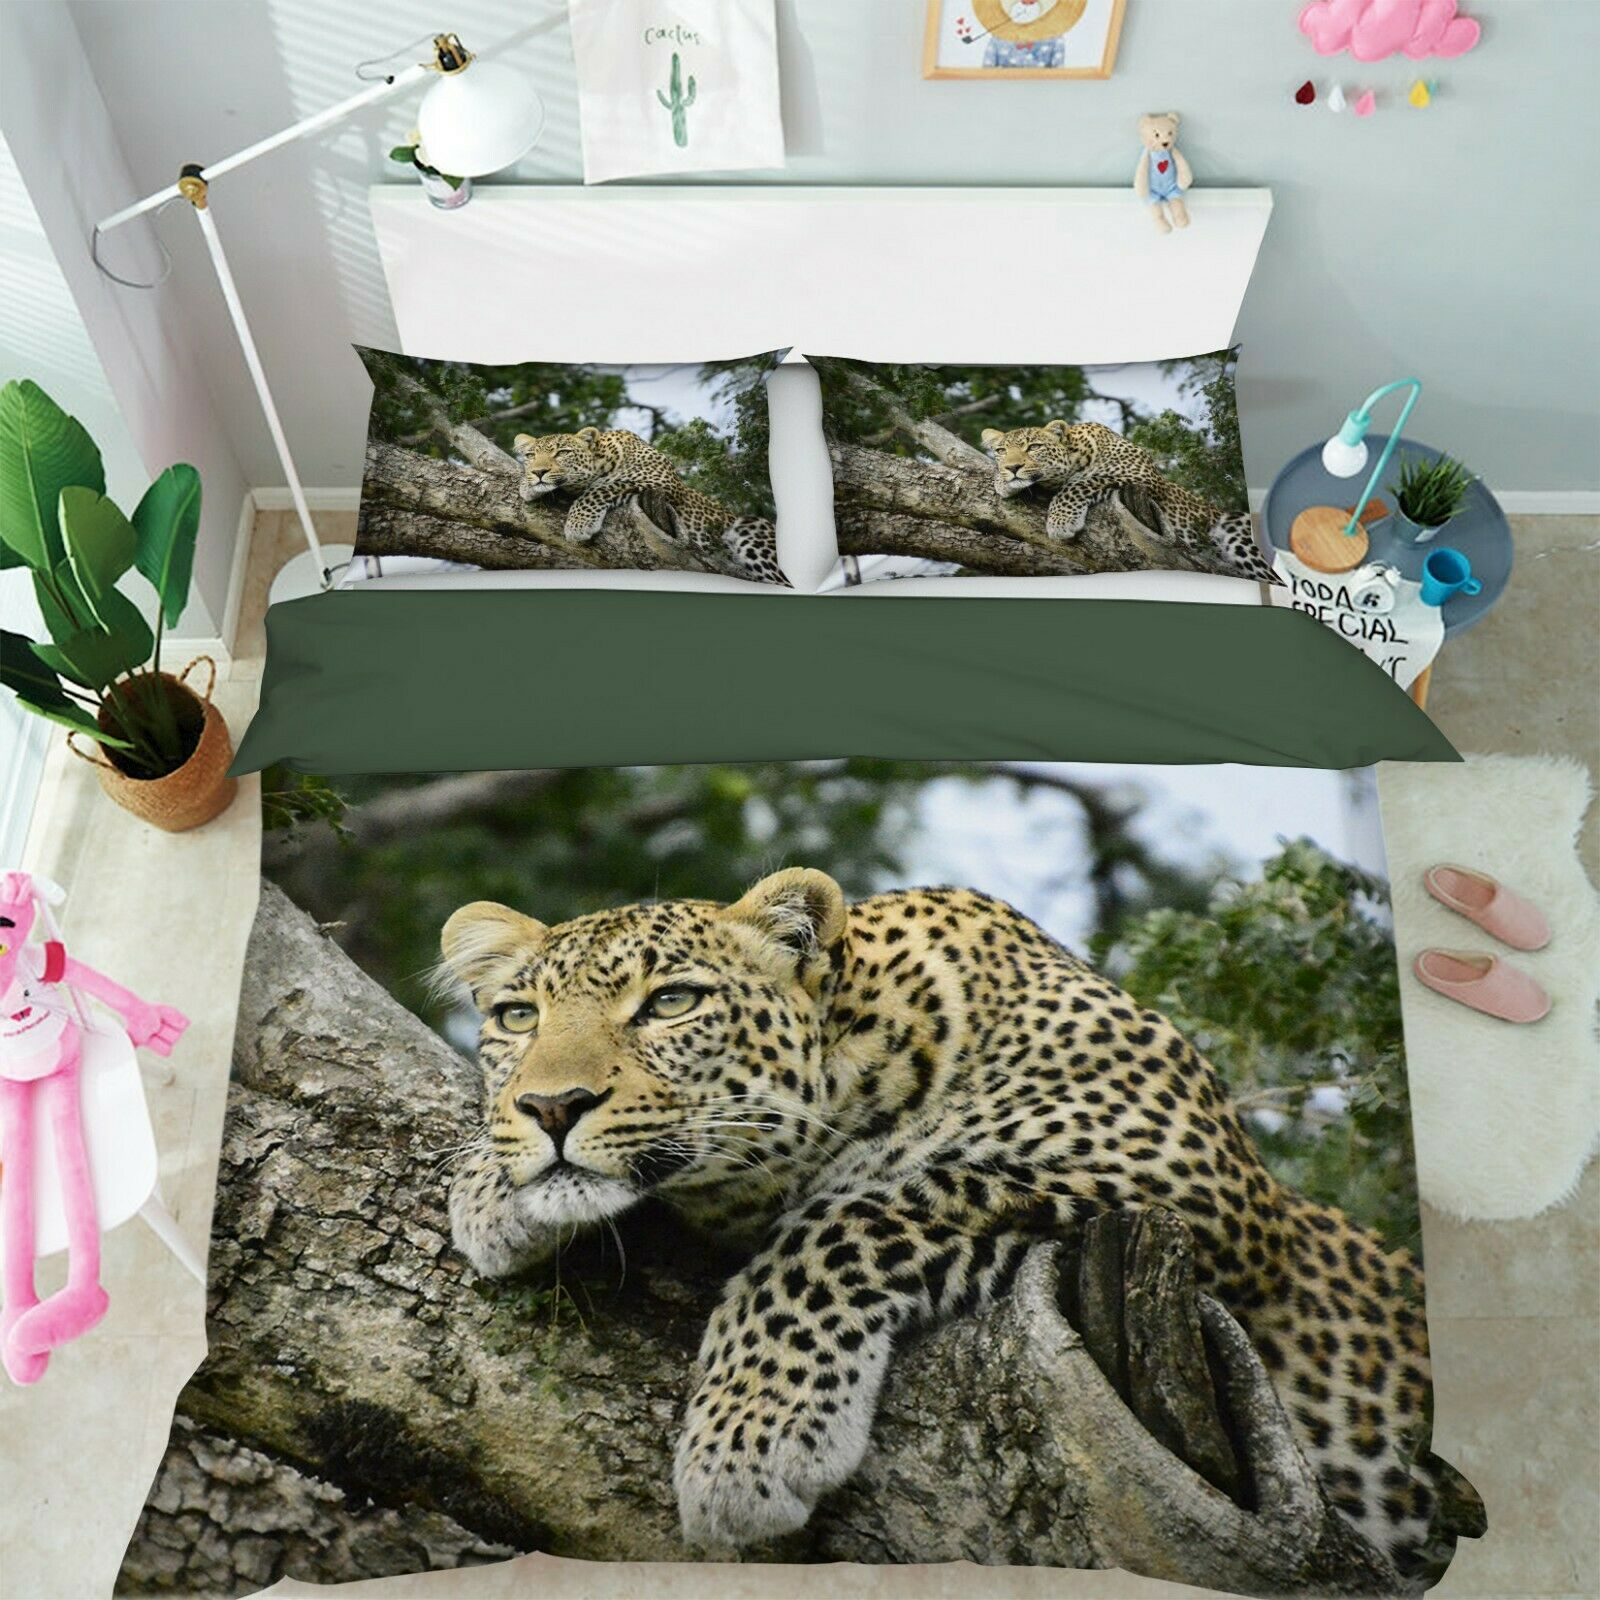 3D Leopard O68 Animal Bed Pillowcases Quilt Duvet Cover Set Queen King Amy